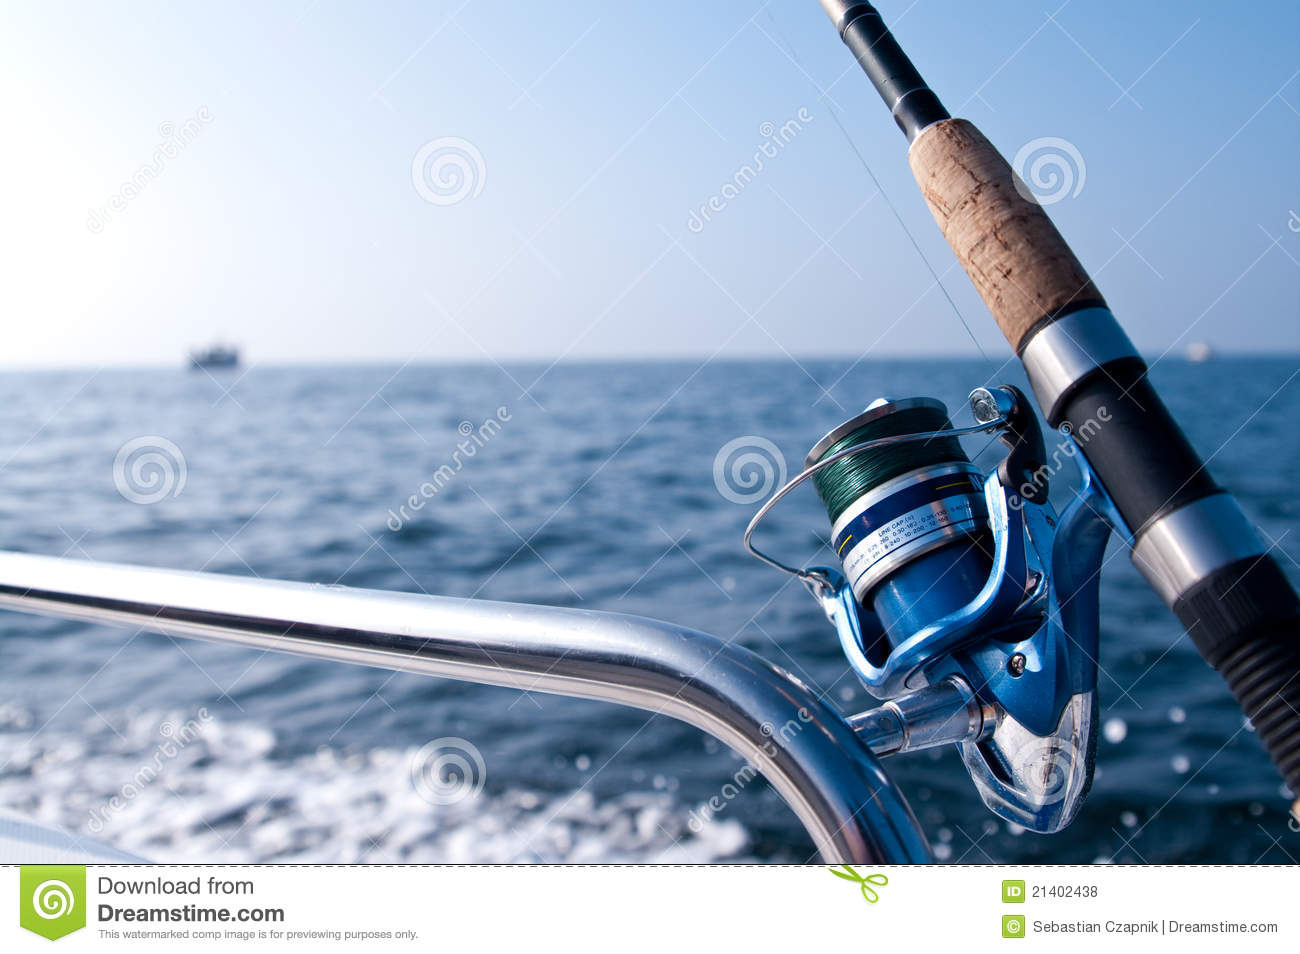 Fishing road on boat at sea